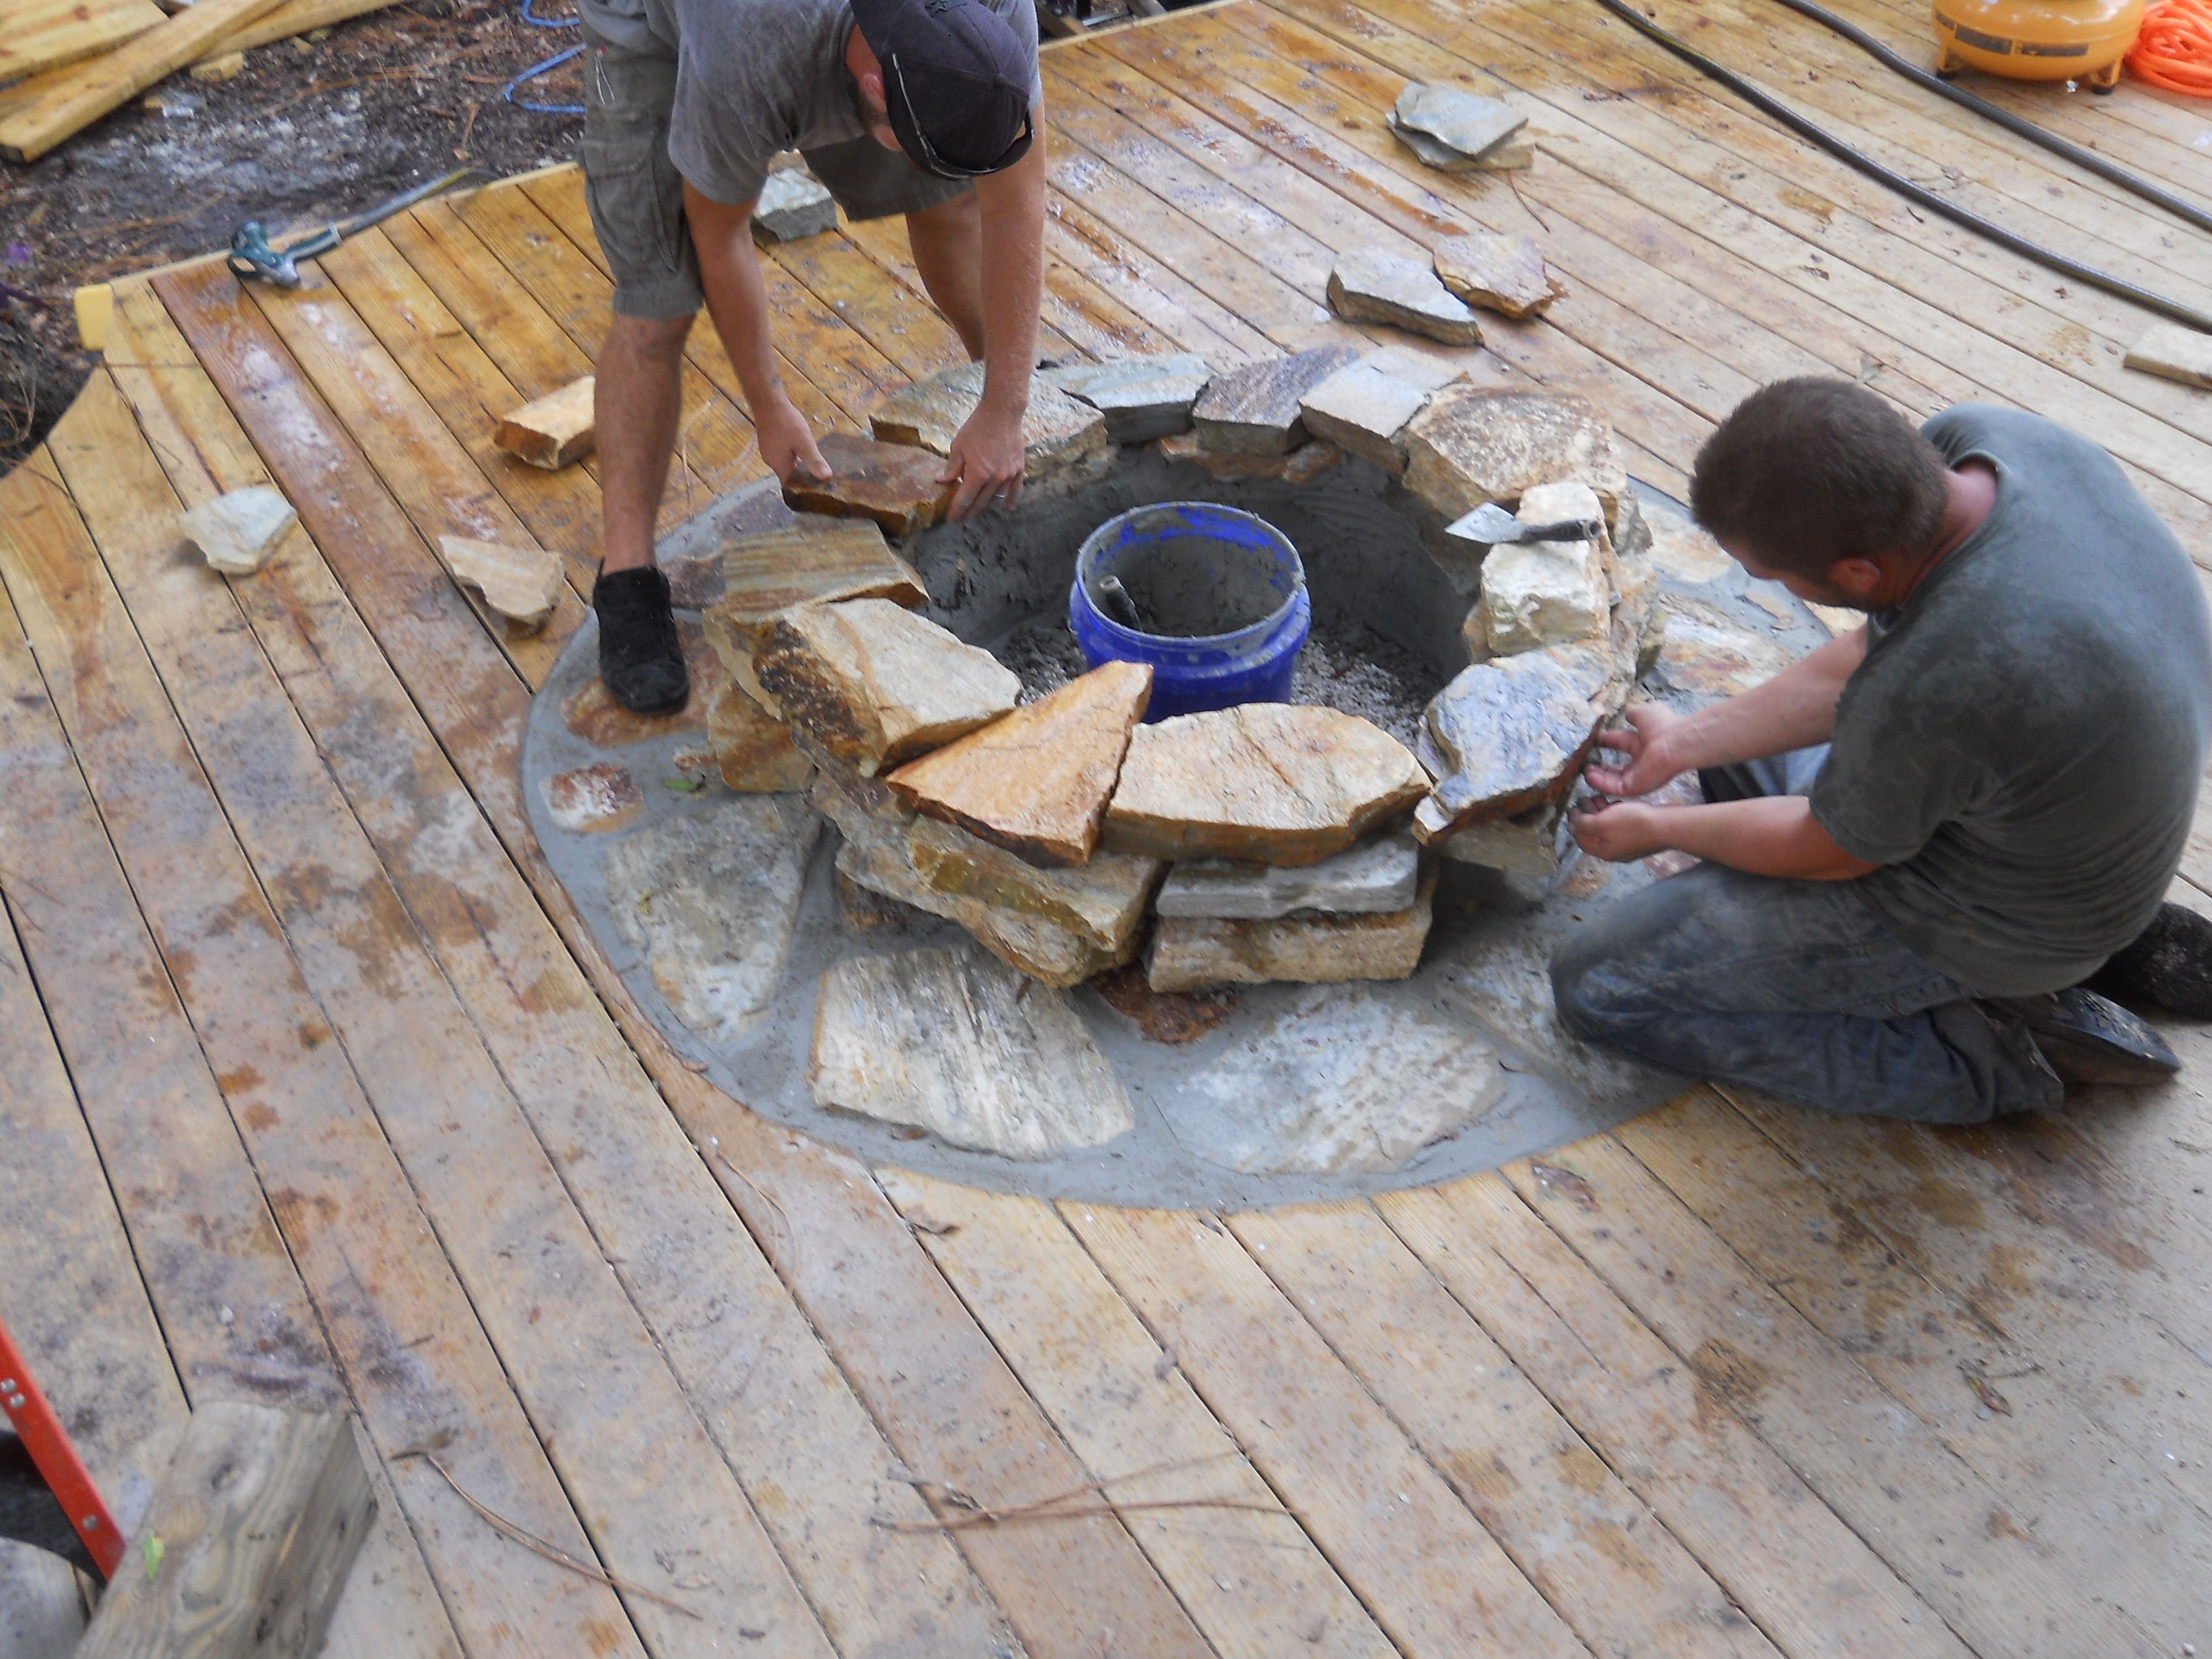 Craftsmen constructing a natural stone fire pit on wooden deck with stone inlay www